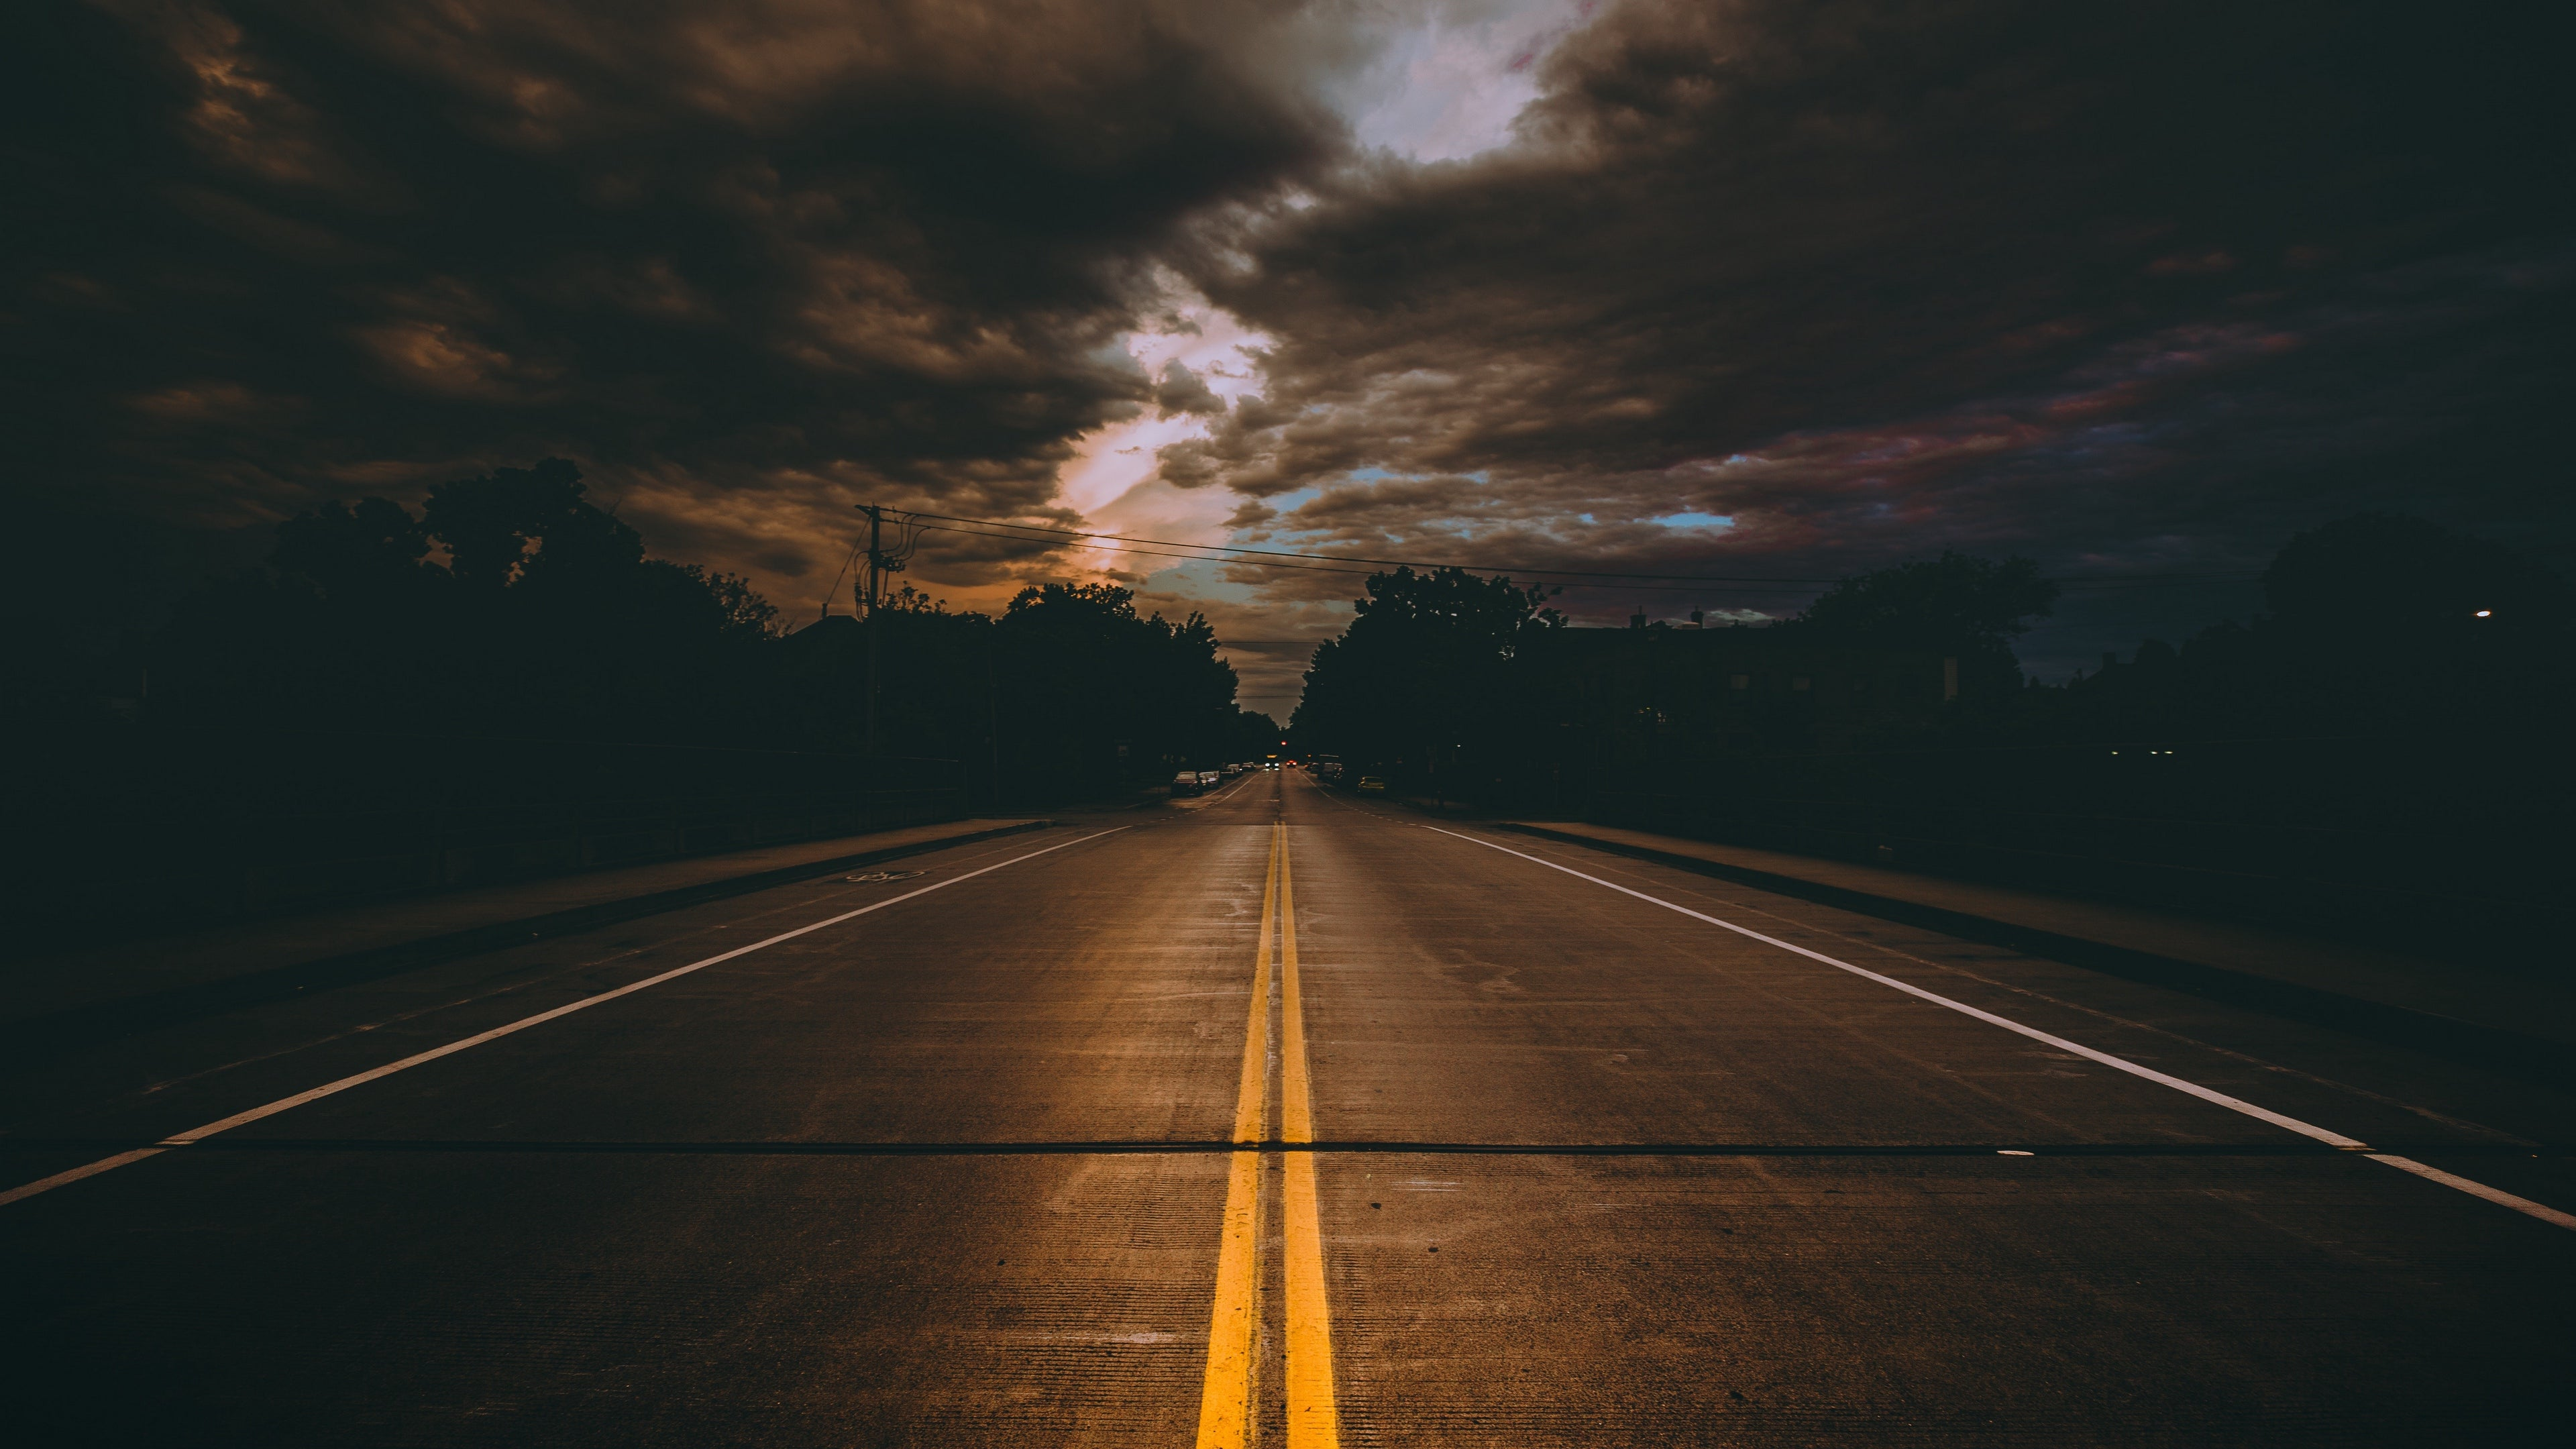 Road Marking Cloudy 4k Wallpaper